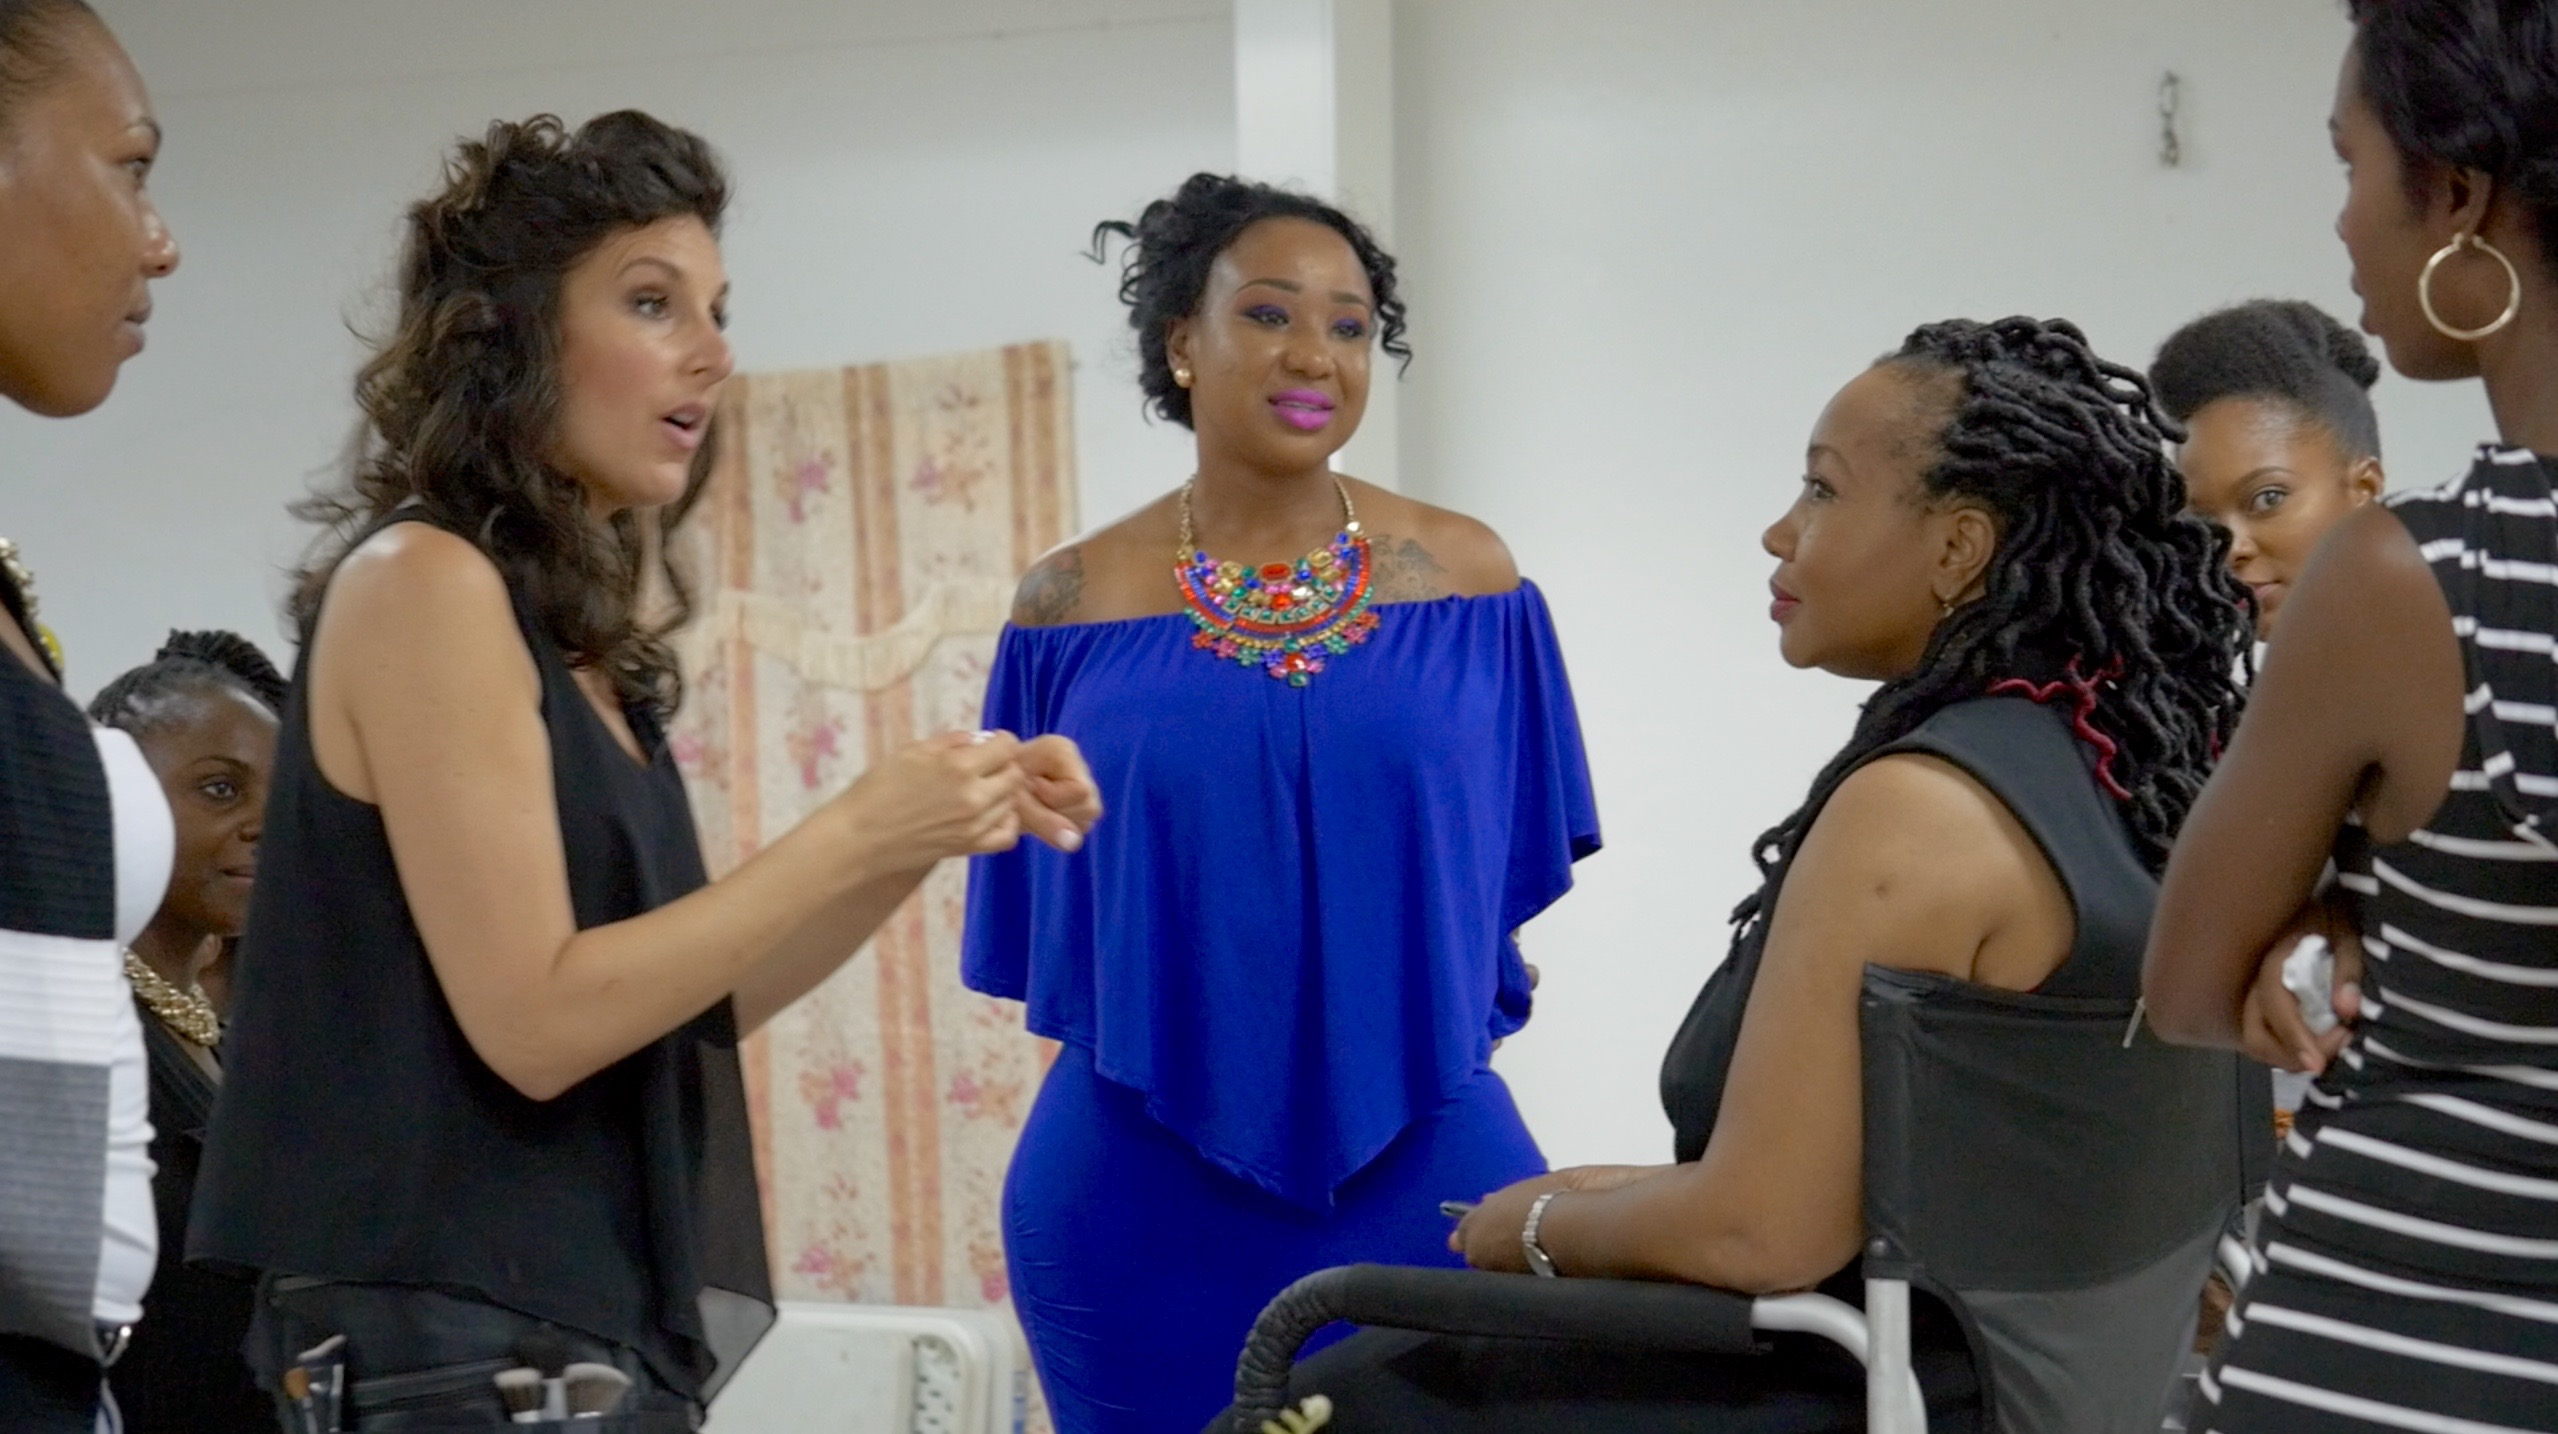 Actress/Activist Tours The World With Makeup Chair To Connect Cultures, Lift Up Women